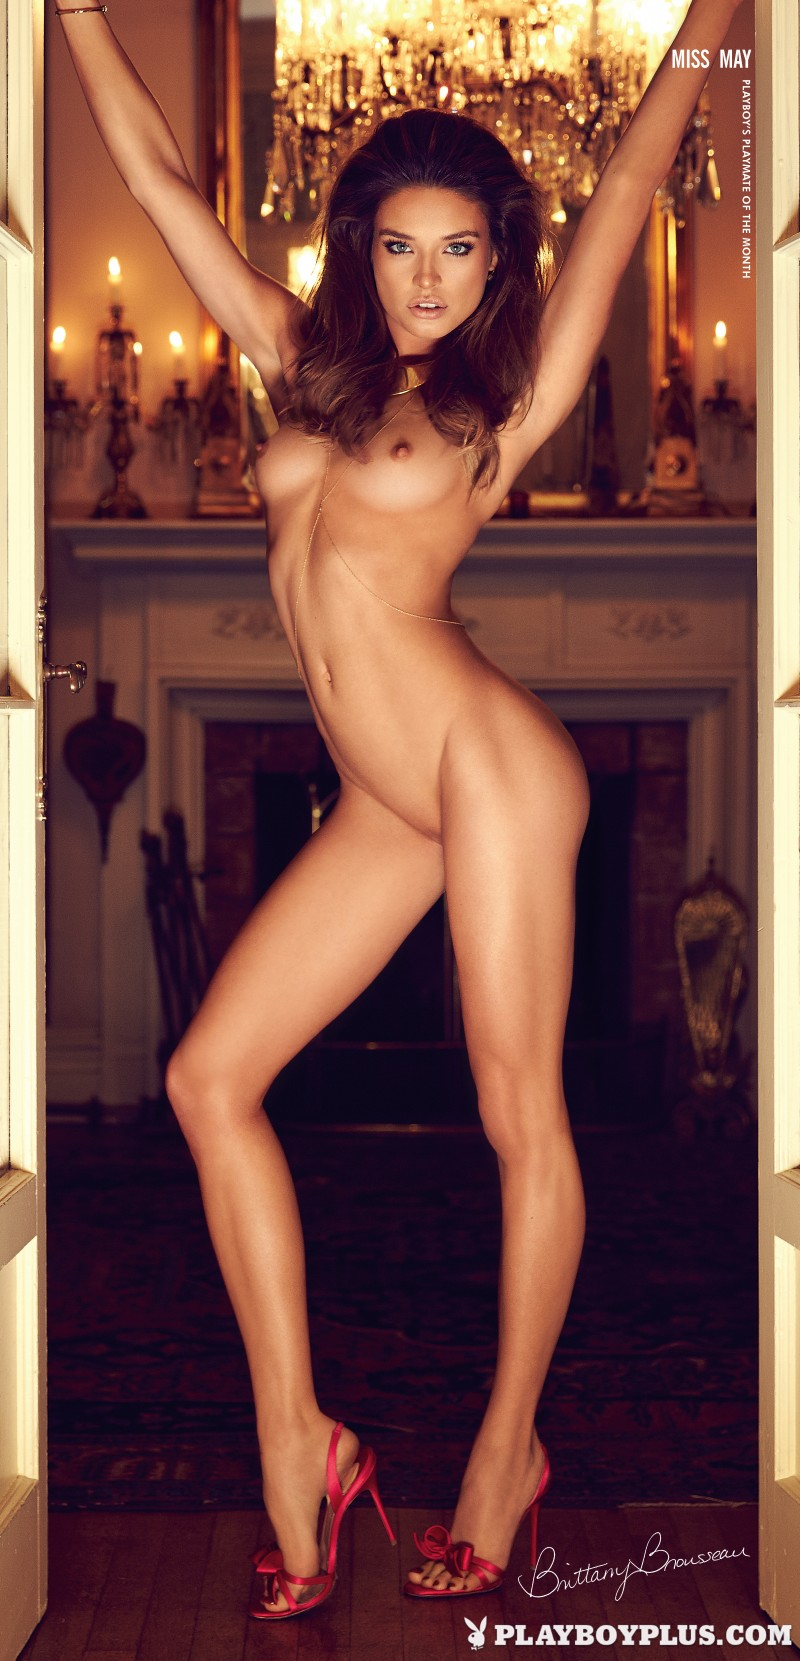 brittany-brousseau-nude-fur-scarf-playboy-16